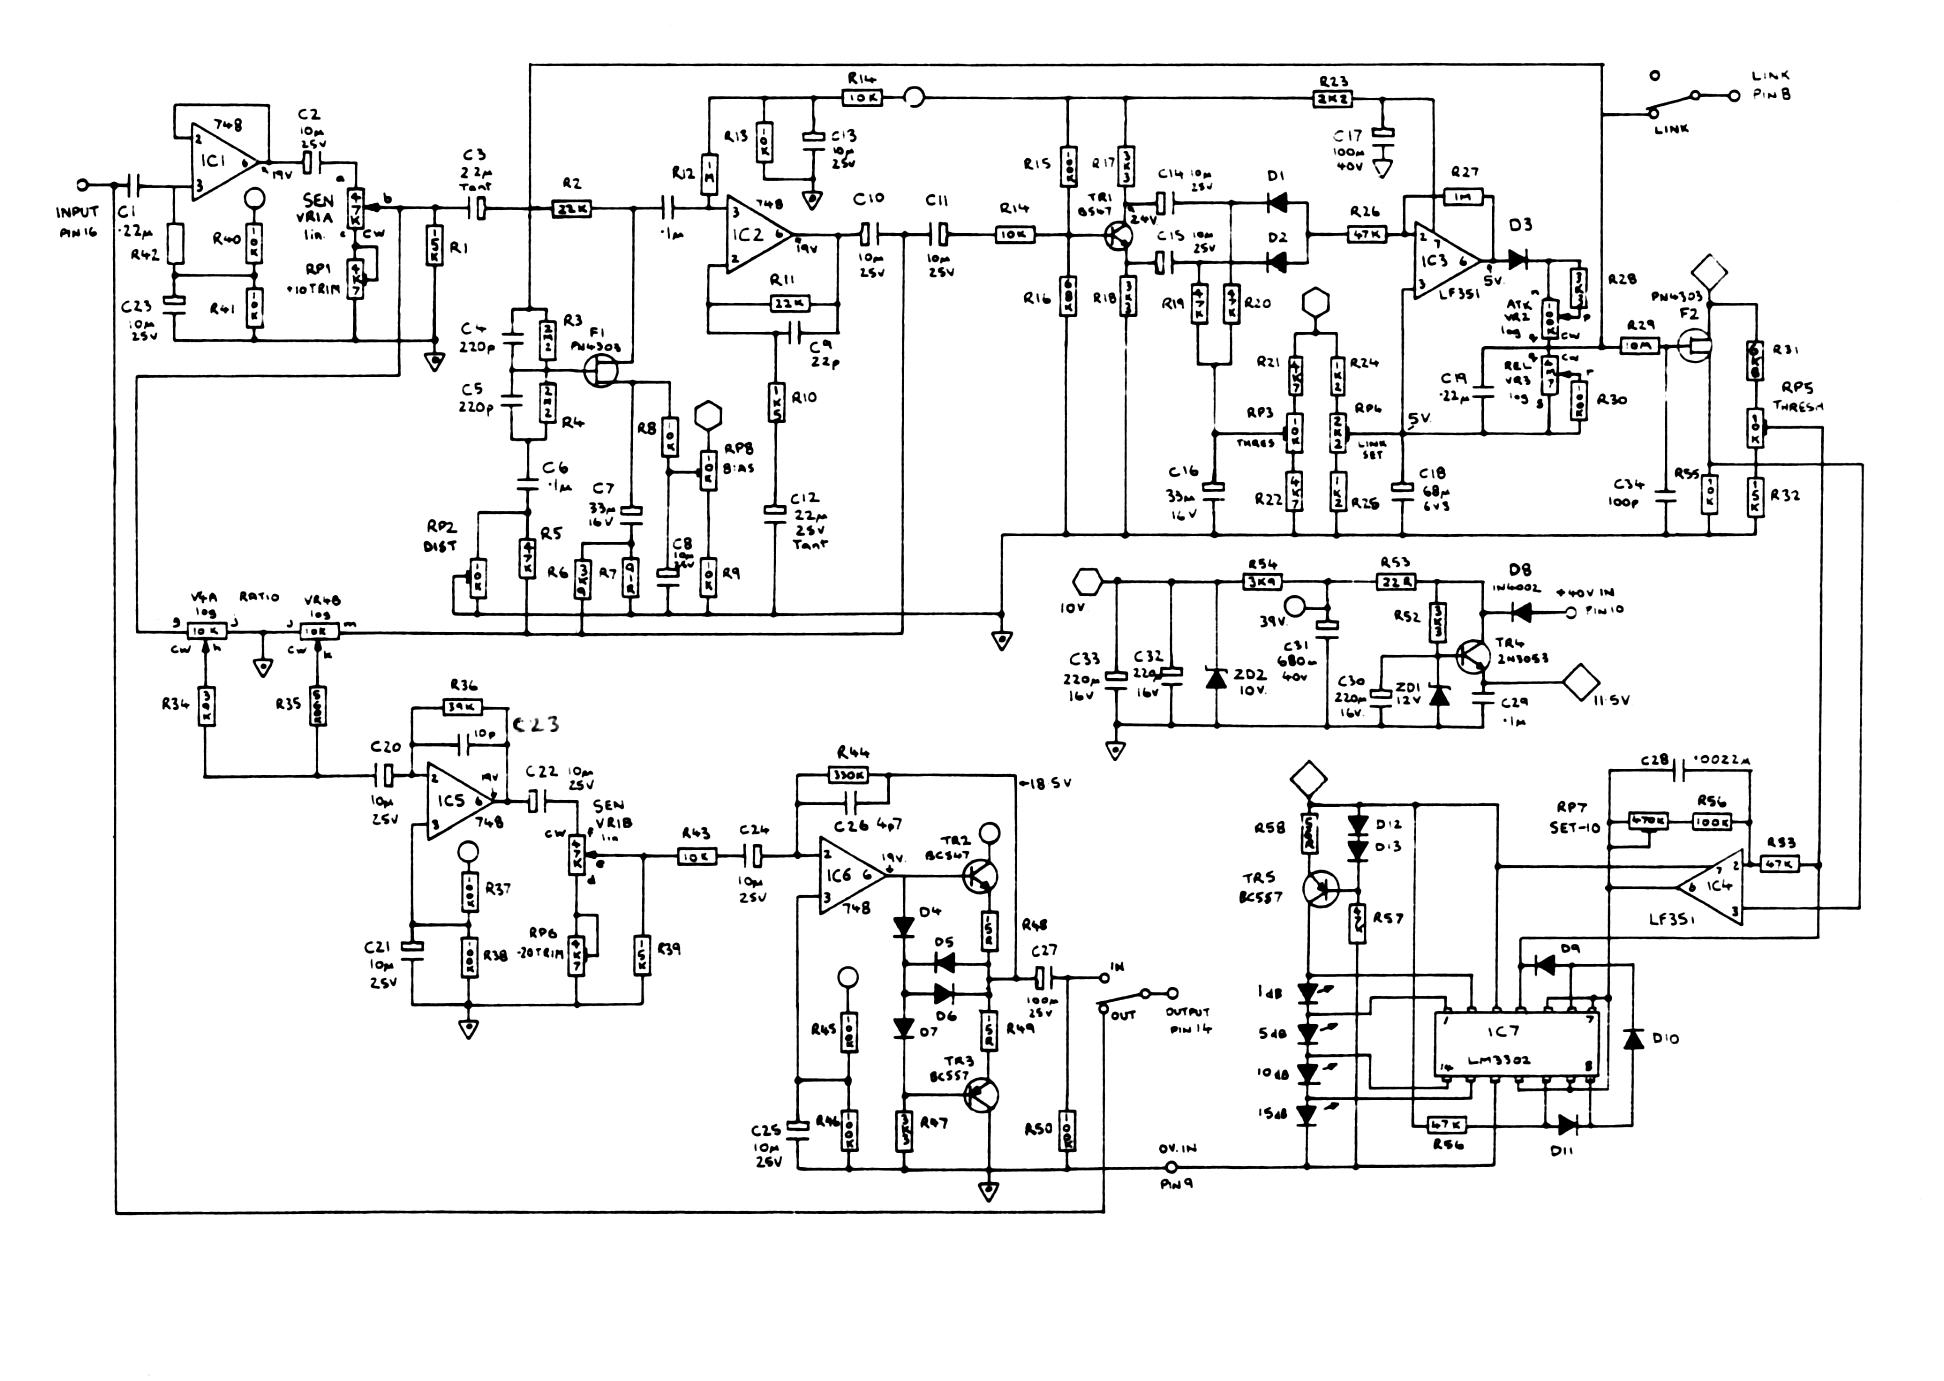 ra 4000 wiring diagram   22 wiring diagram images